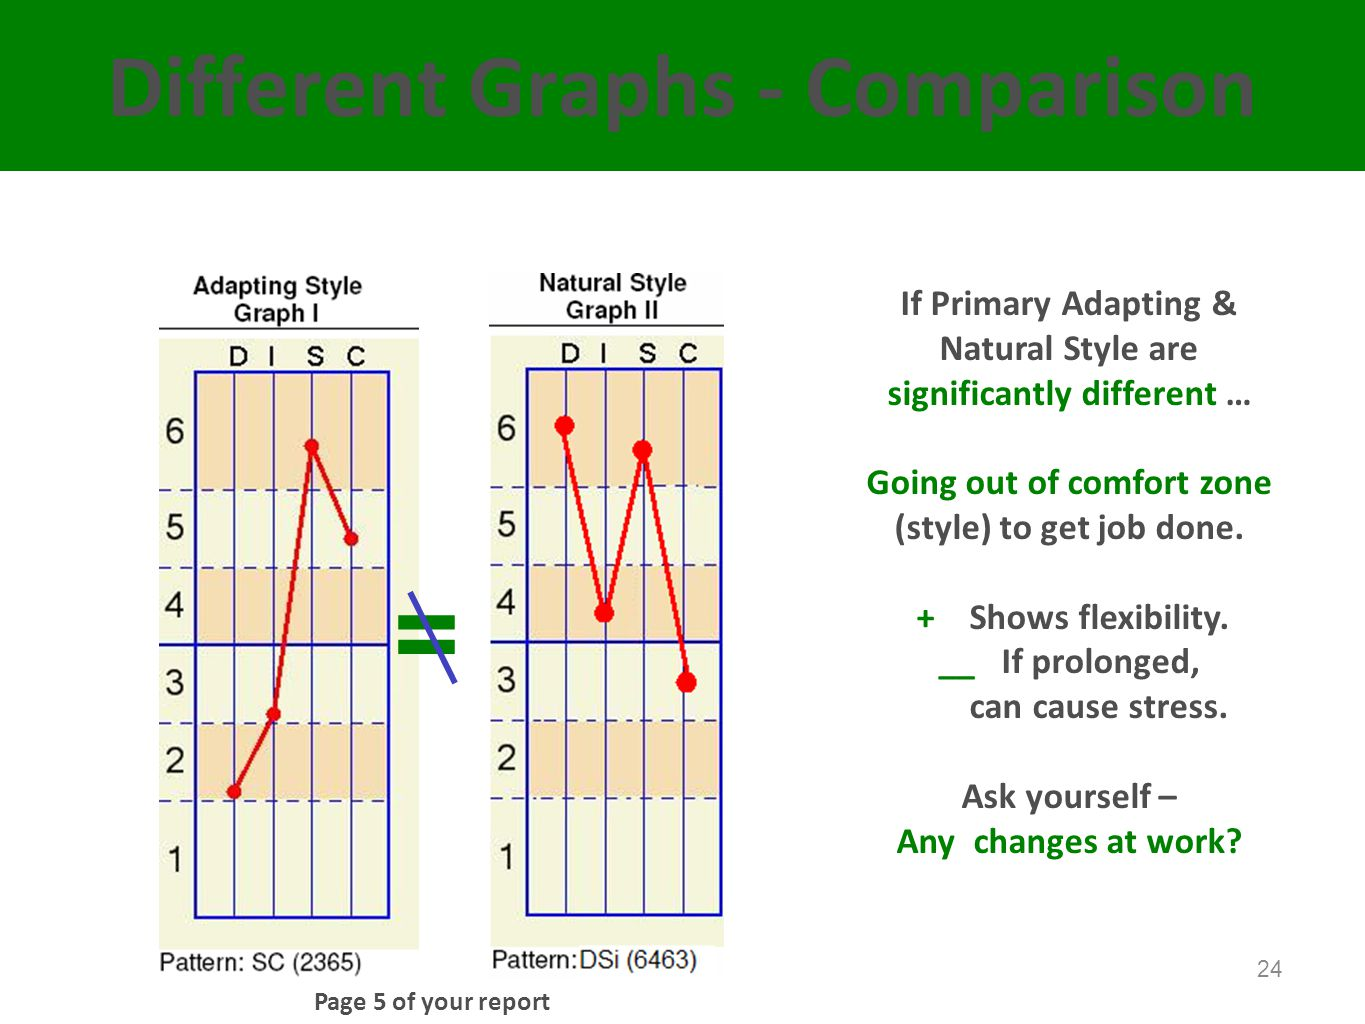 = Different Graphs - Comparison If Primary Adapting &